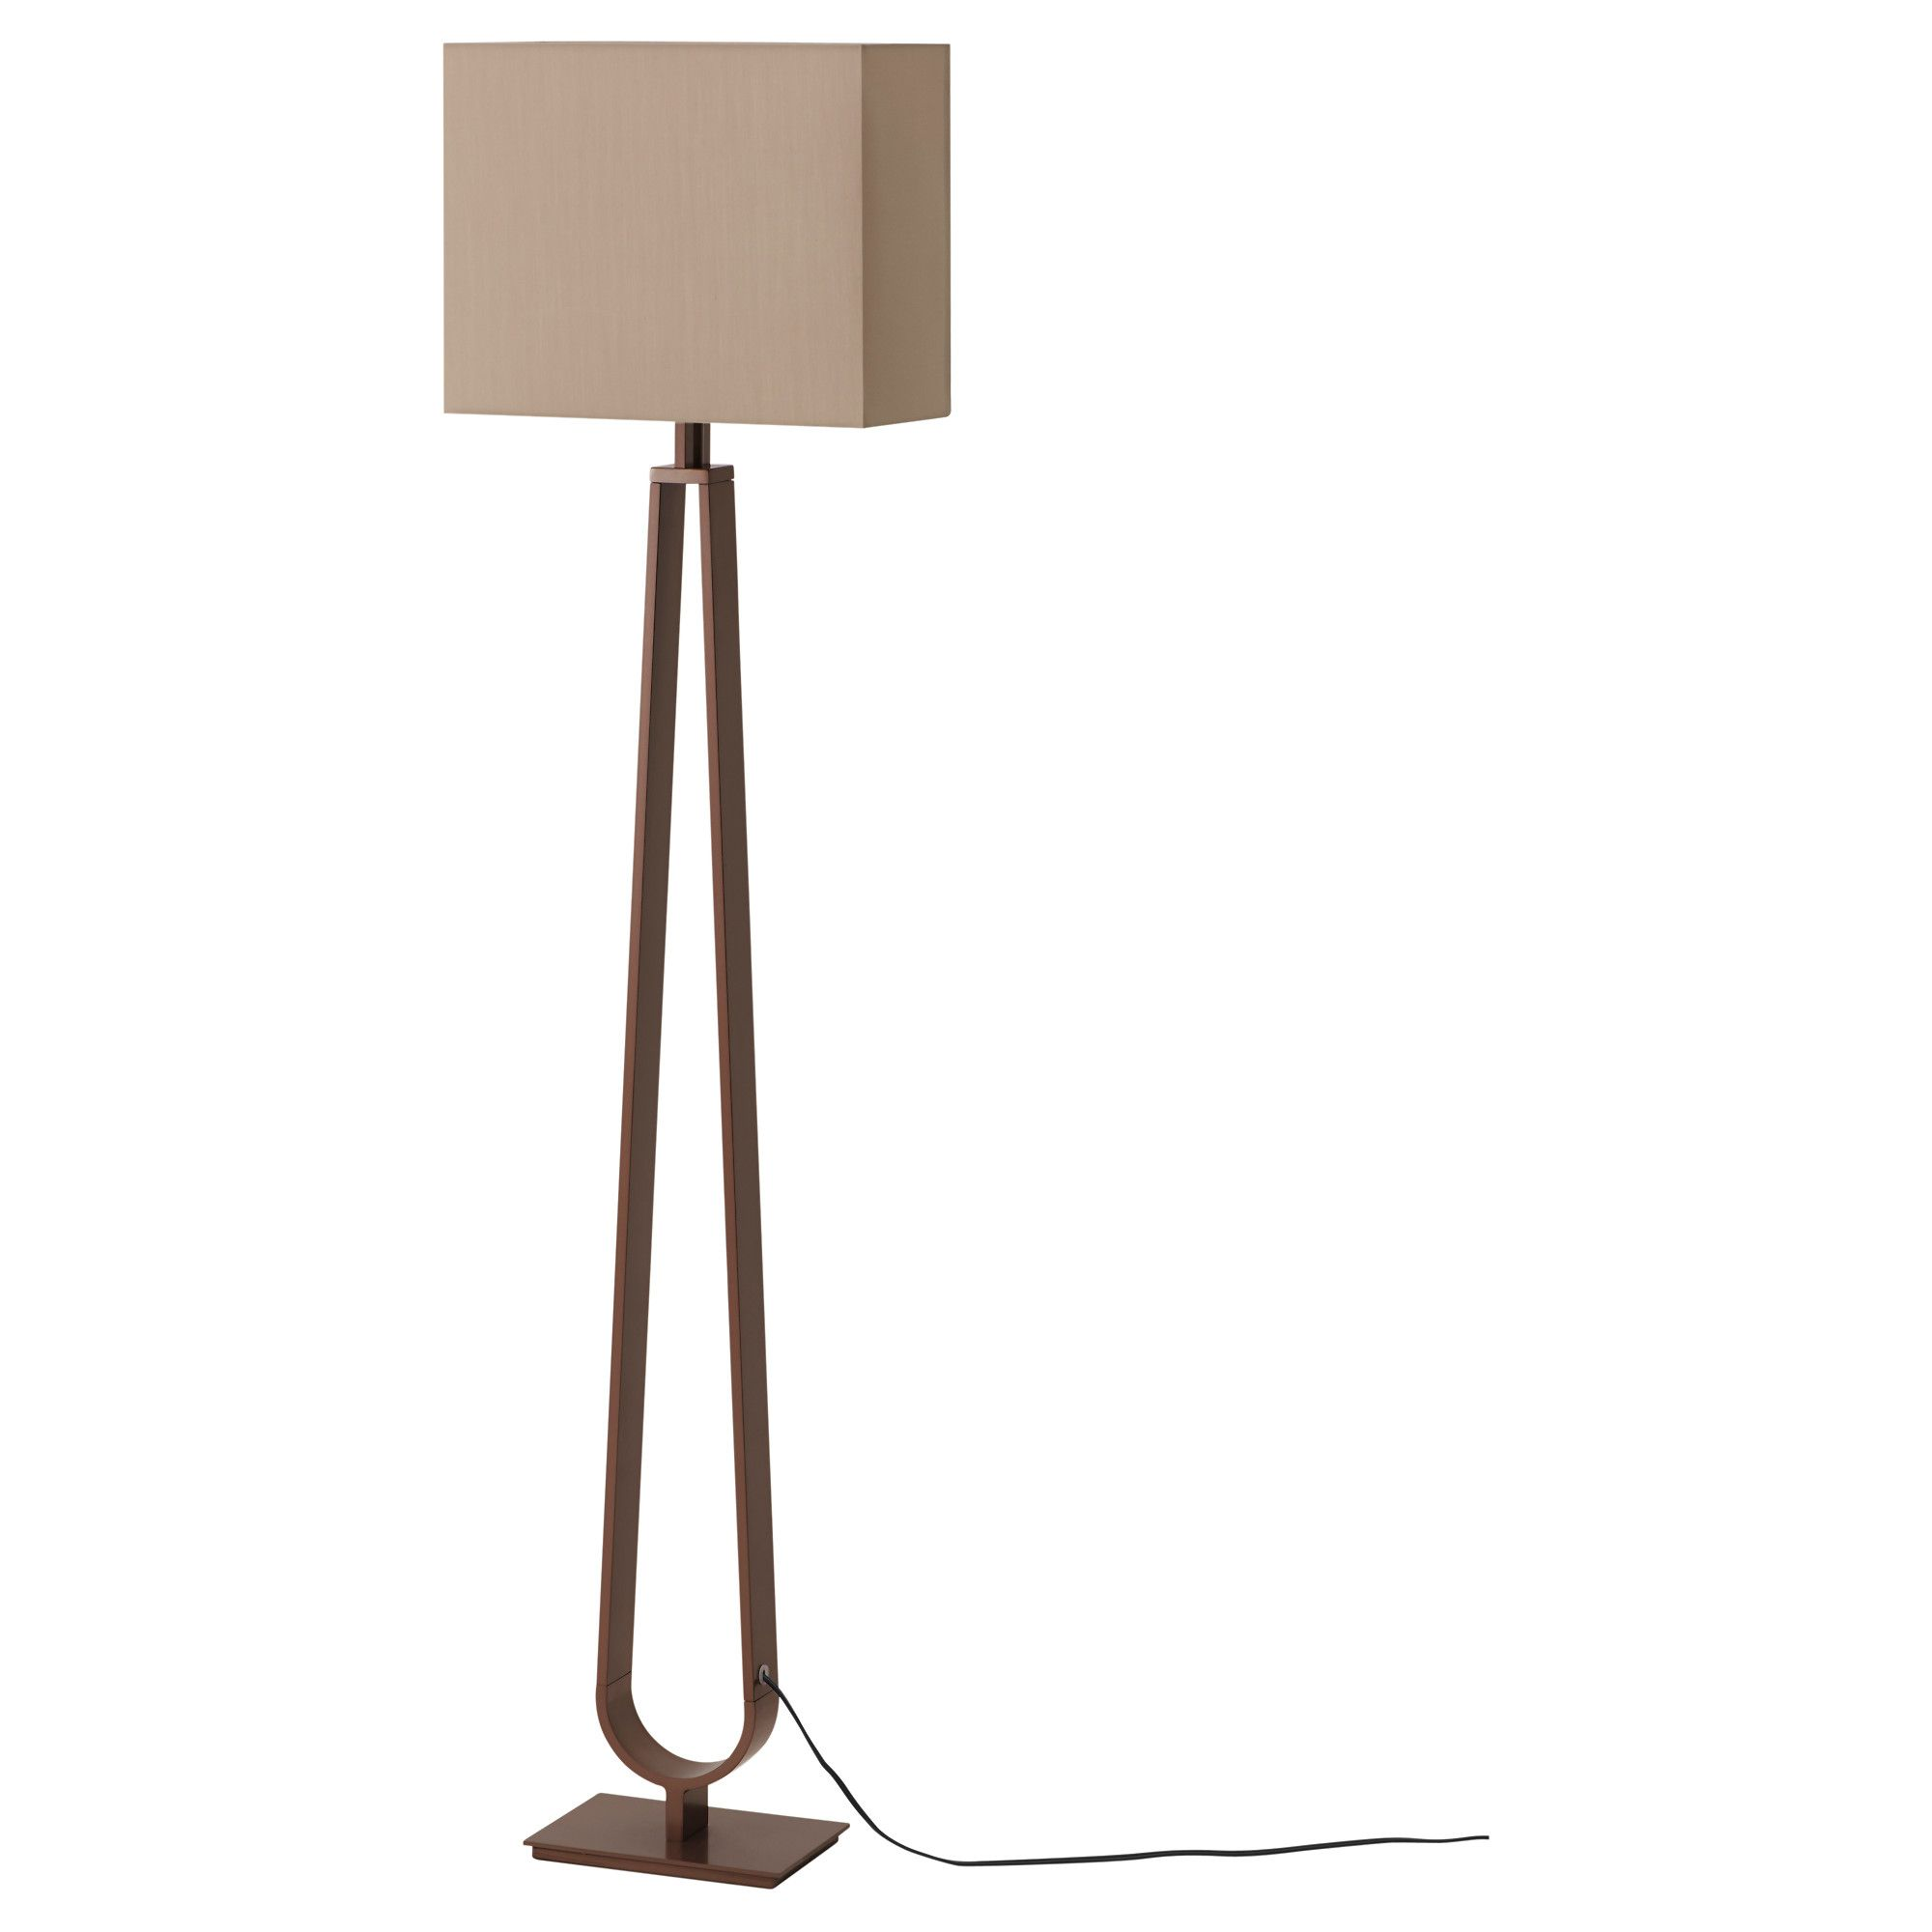 KLABB Floor lamp, light brown, bronze color